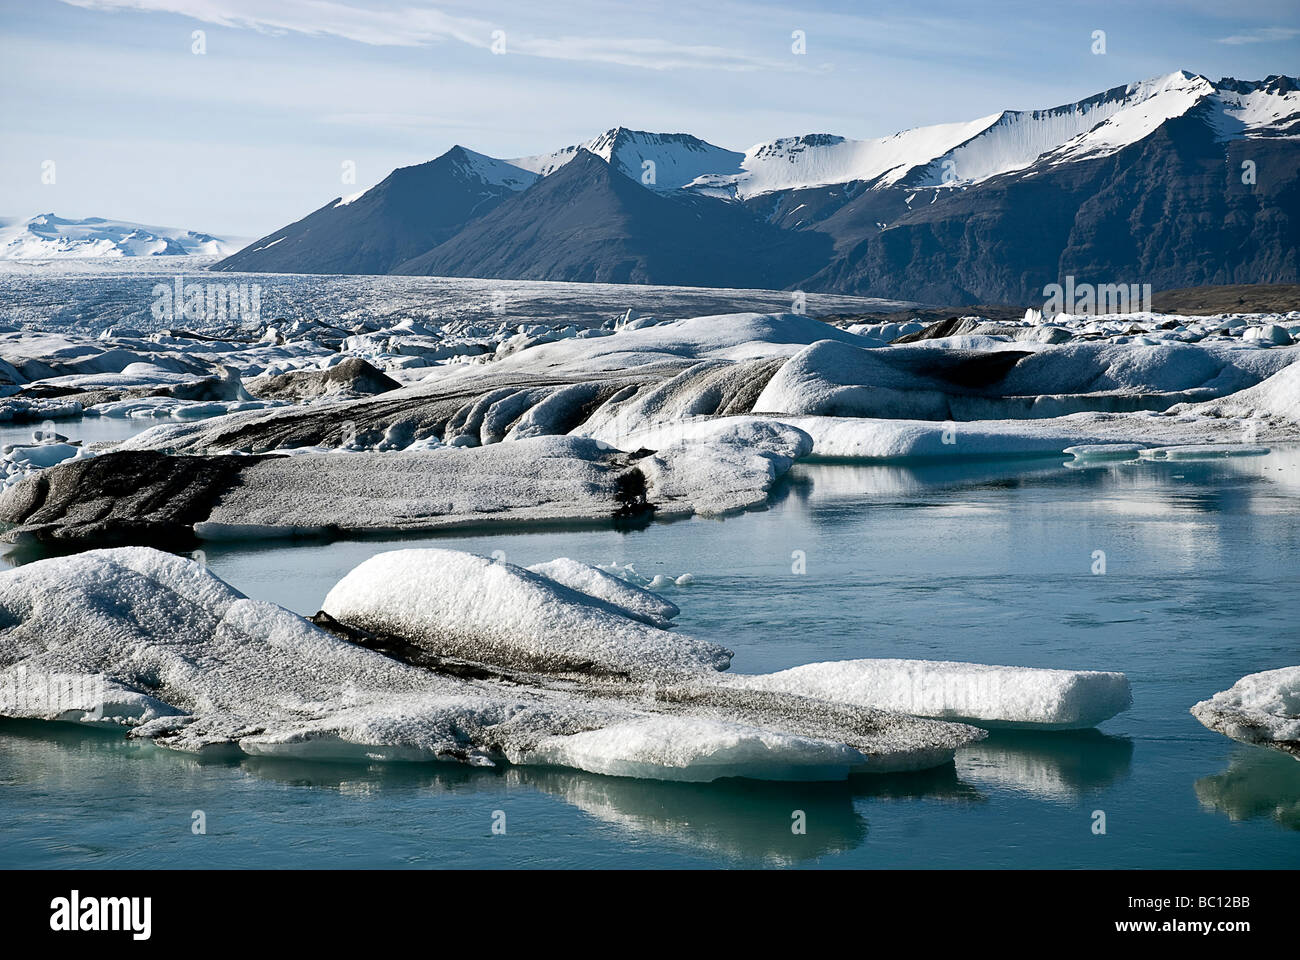 Icefloes floating in blue Jokulsarlon glacial lagoon in Iceland - Stock Image